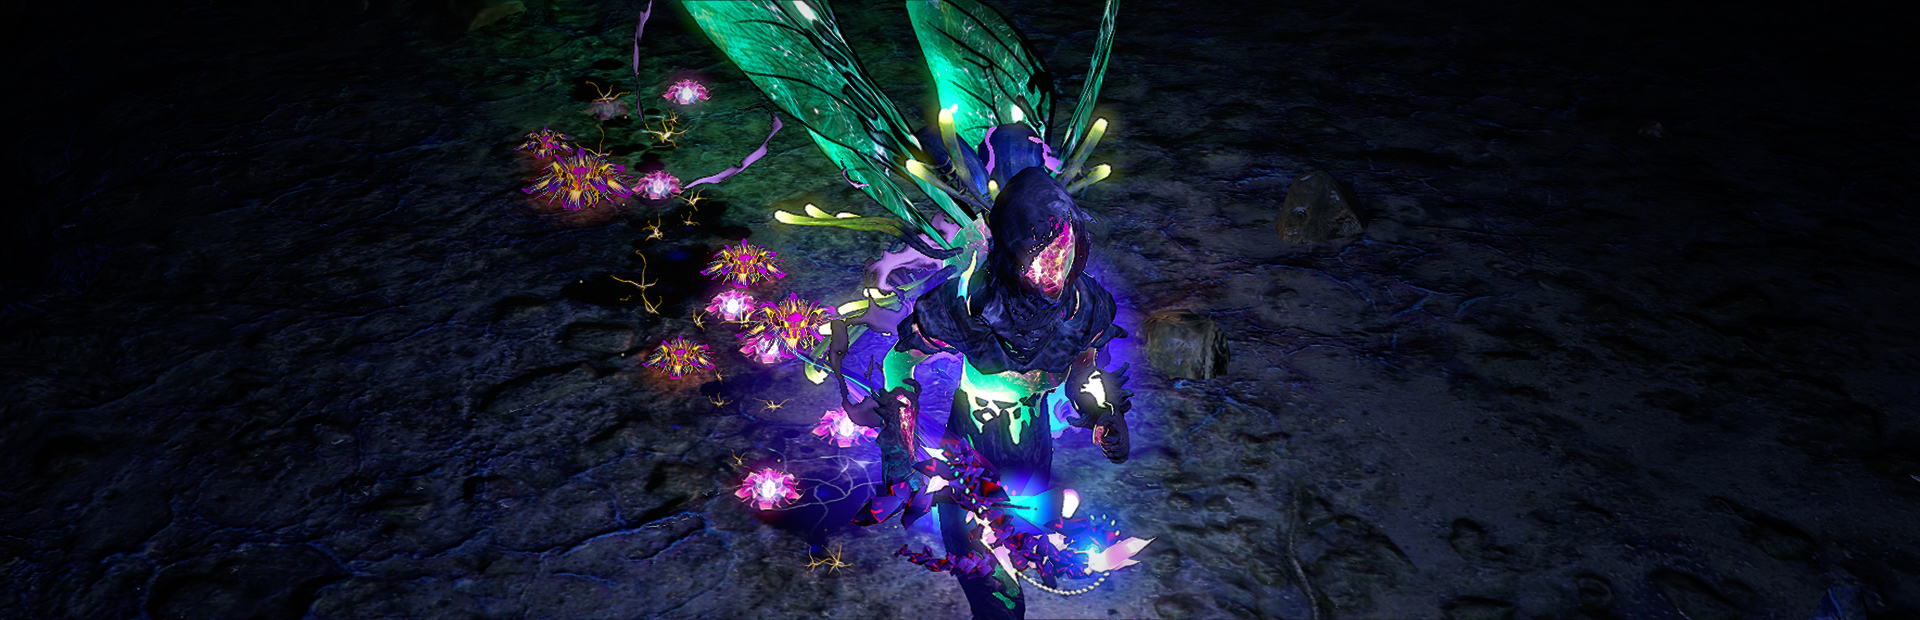 Path of Exile :: Download the Glimmerwood Mystery Box